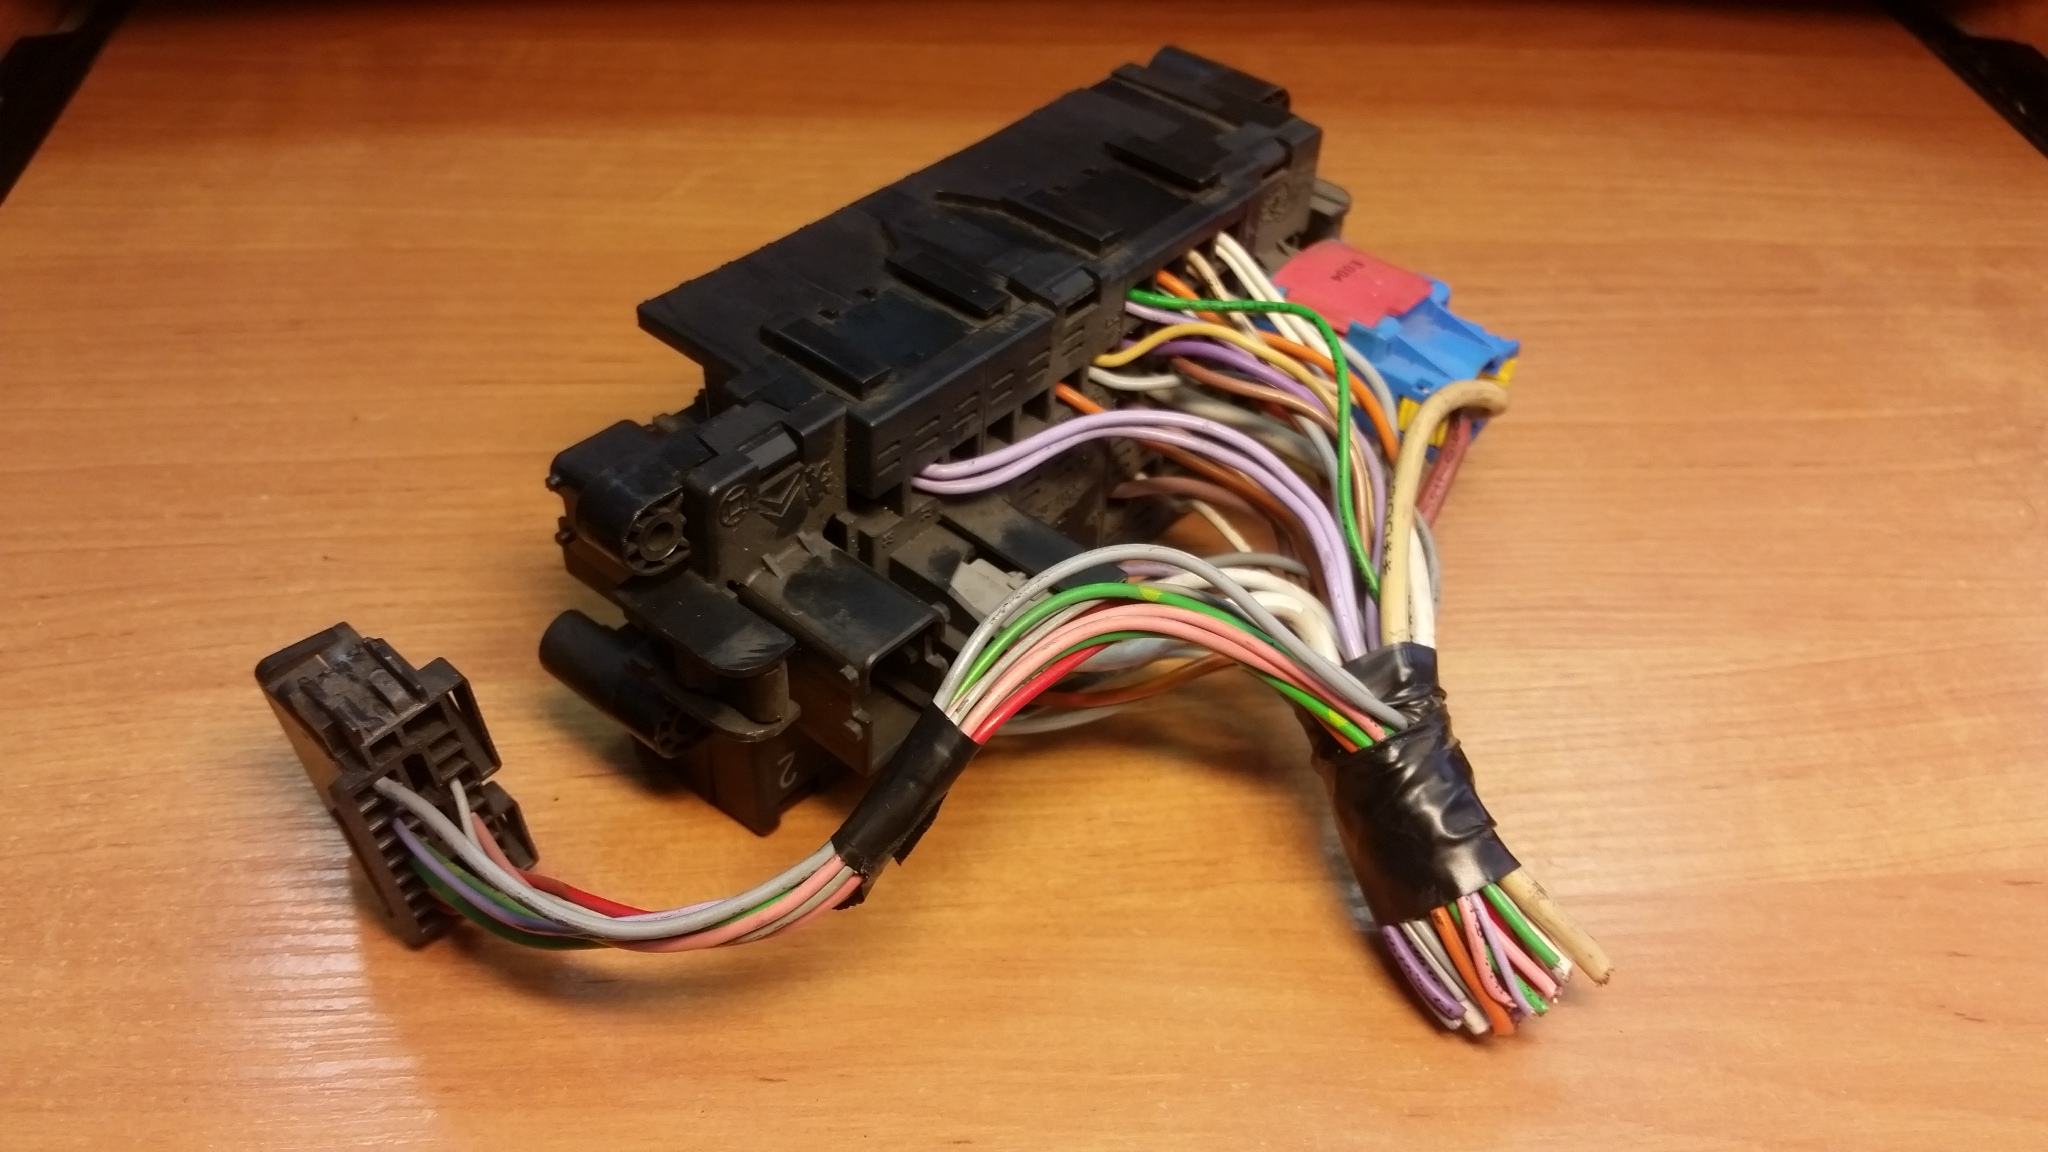 Peugeot Partner 2,0 HDI Fuse Box 9635518280 (Article: 9635518280)